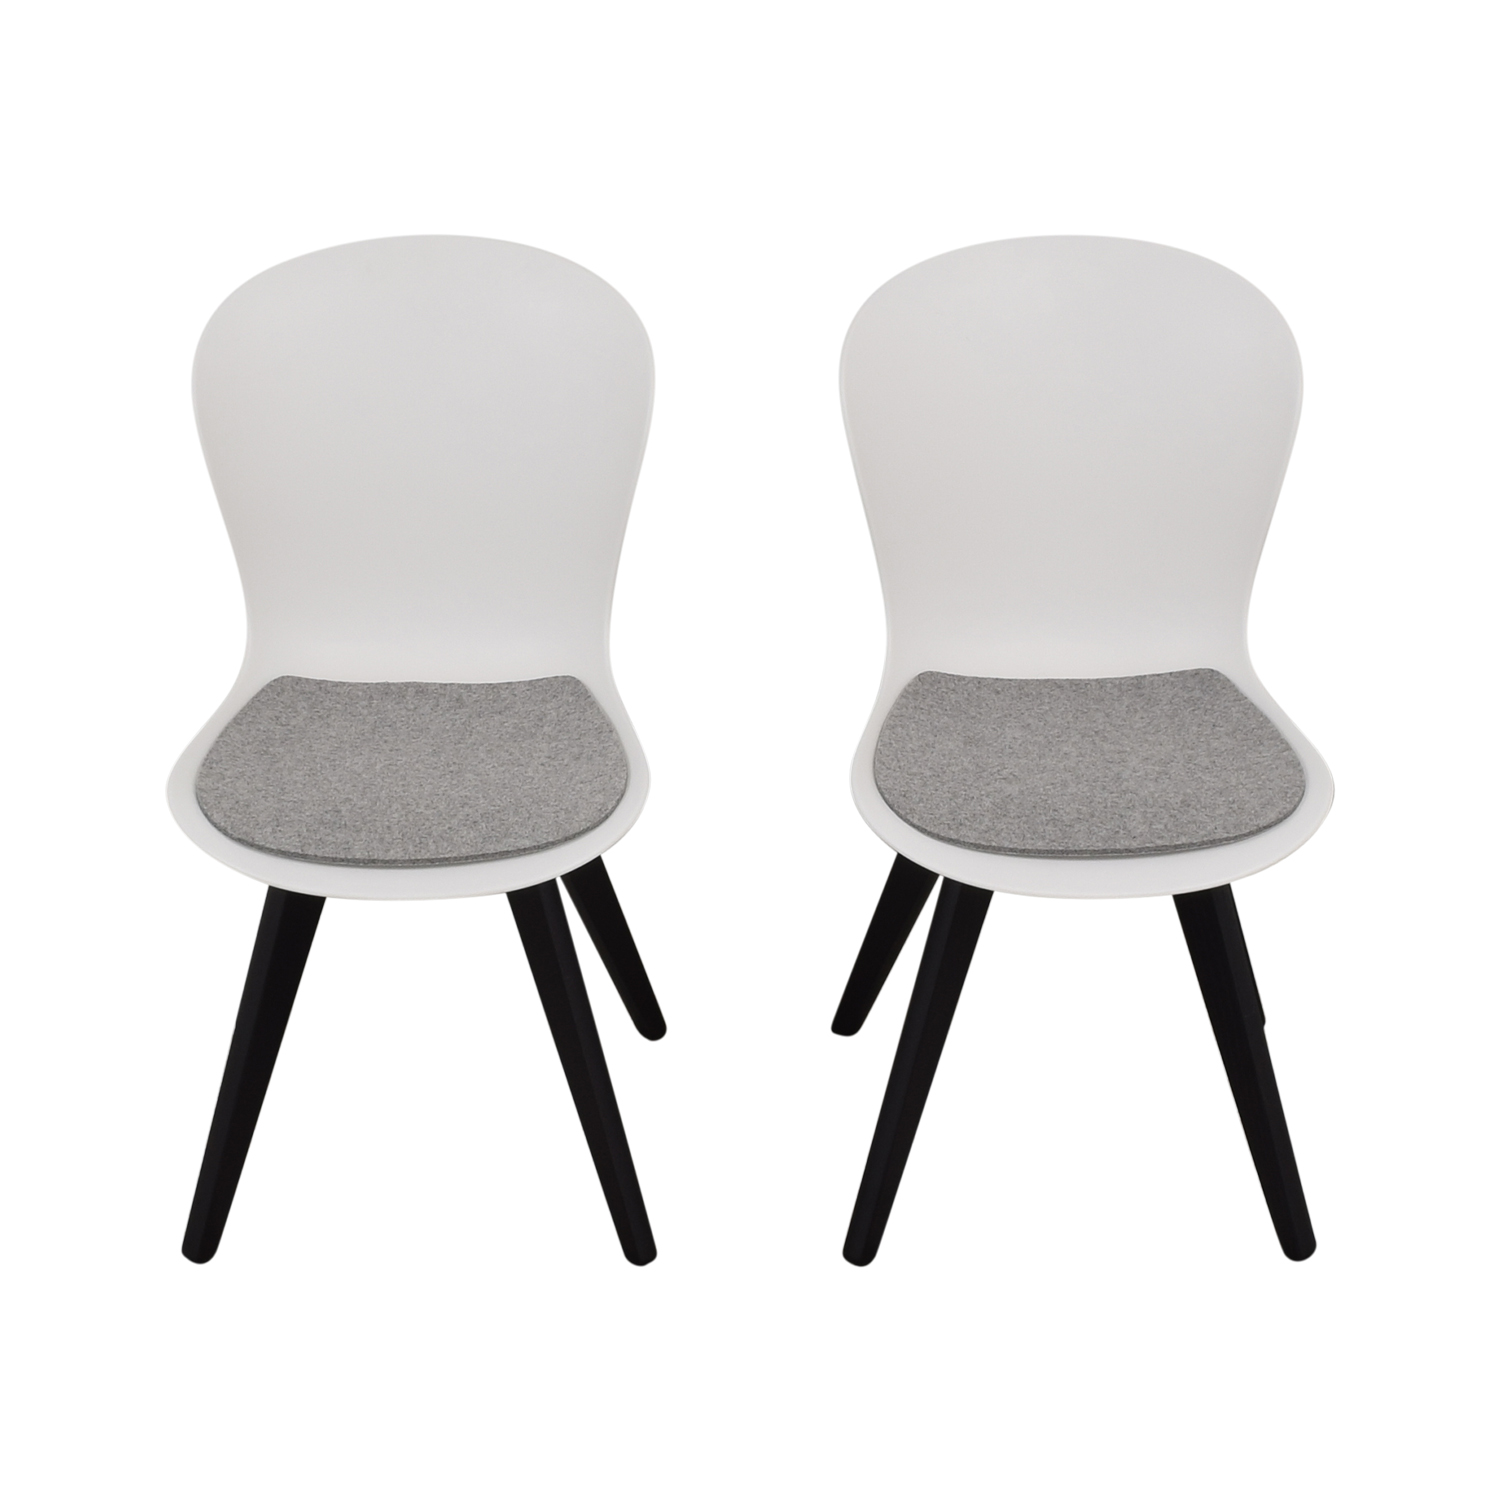 BoConcept BoConcept Adelaide Chairs with Morgan Seat Cushions discount